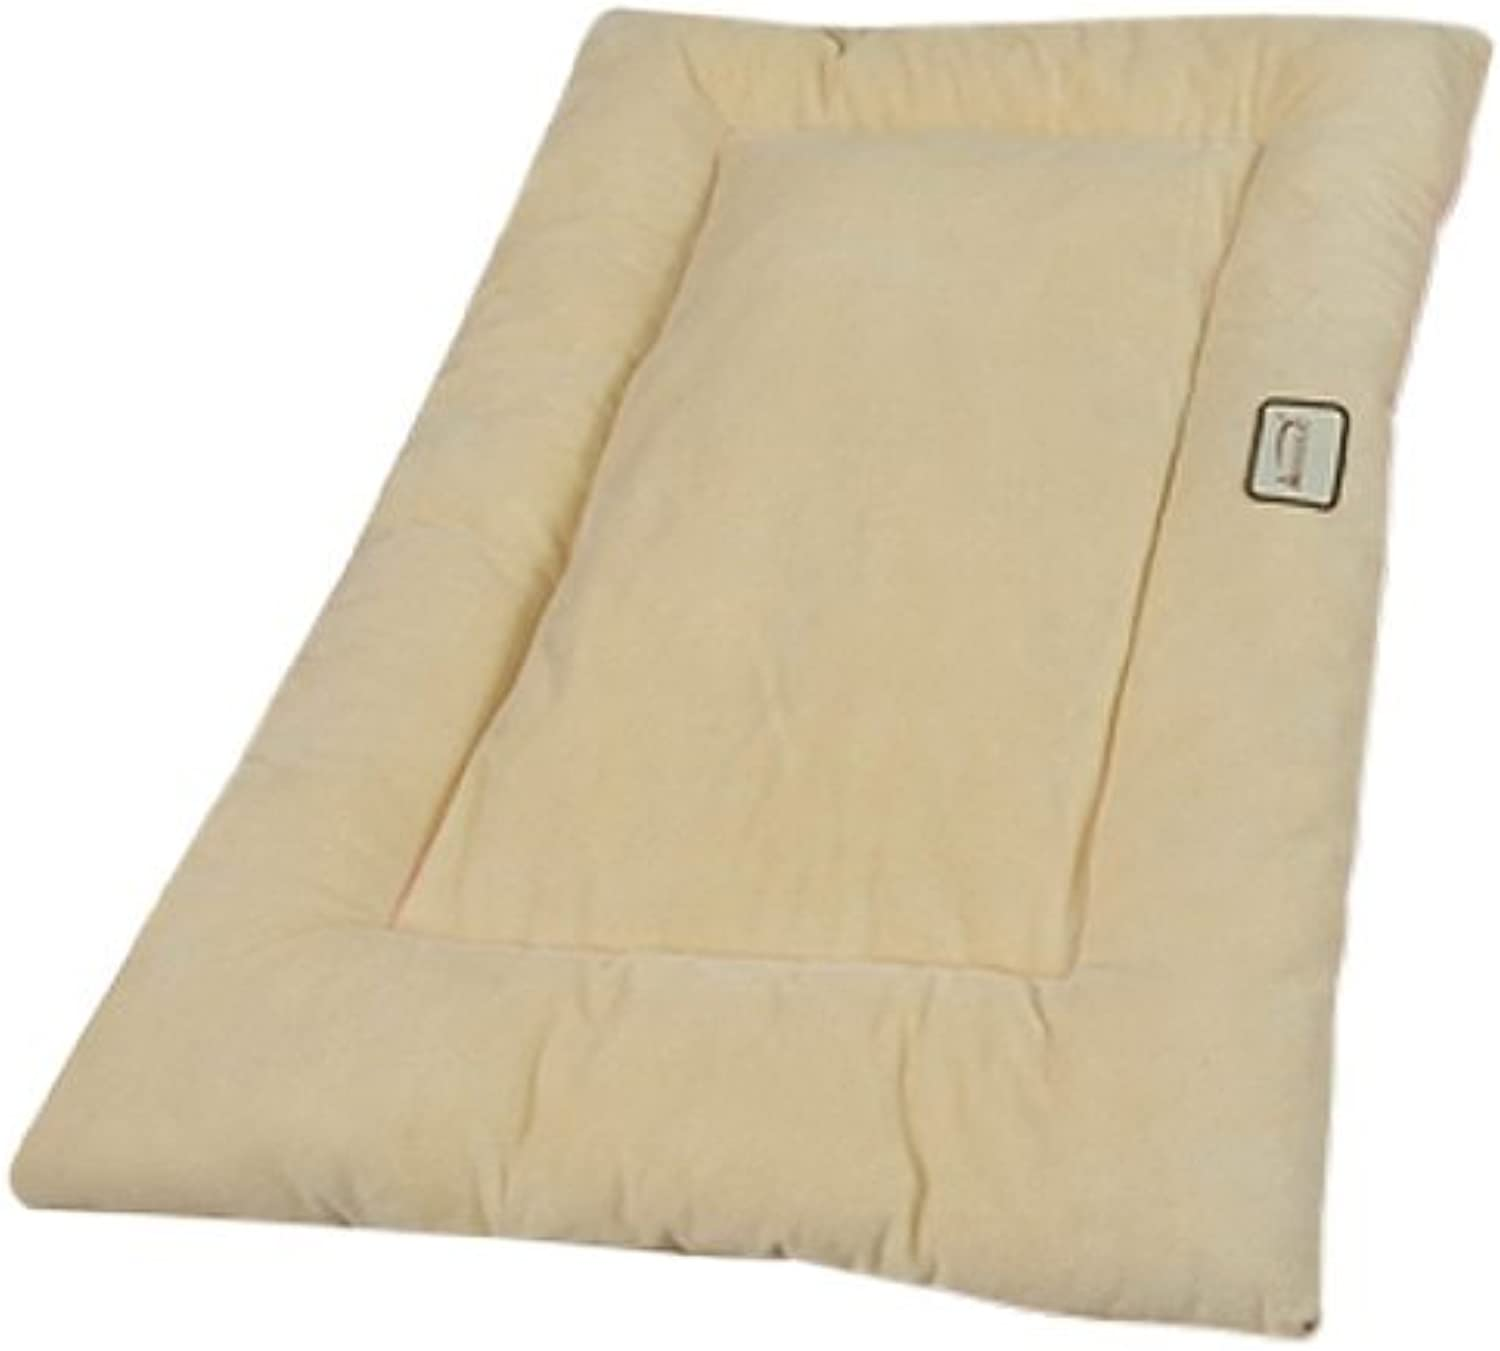 Armarkat Pet Bed Mat 27Inch by 19Inch by 2.5Inch M01Medium, Beige by Armarkat